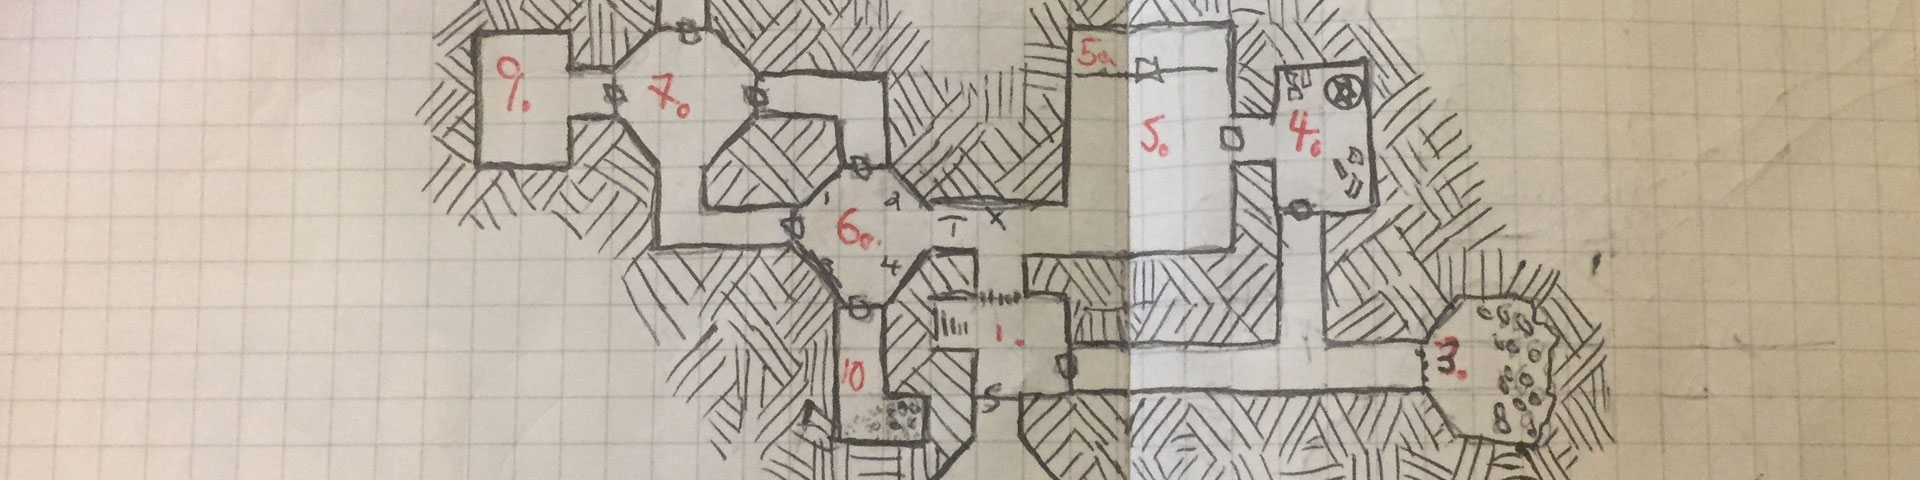 A small conventional graph paper dungeon featuring blocks, hexagons, and connecting passages.